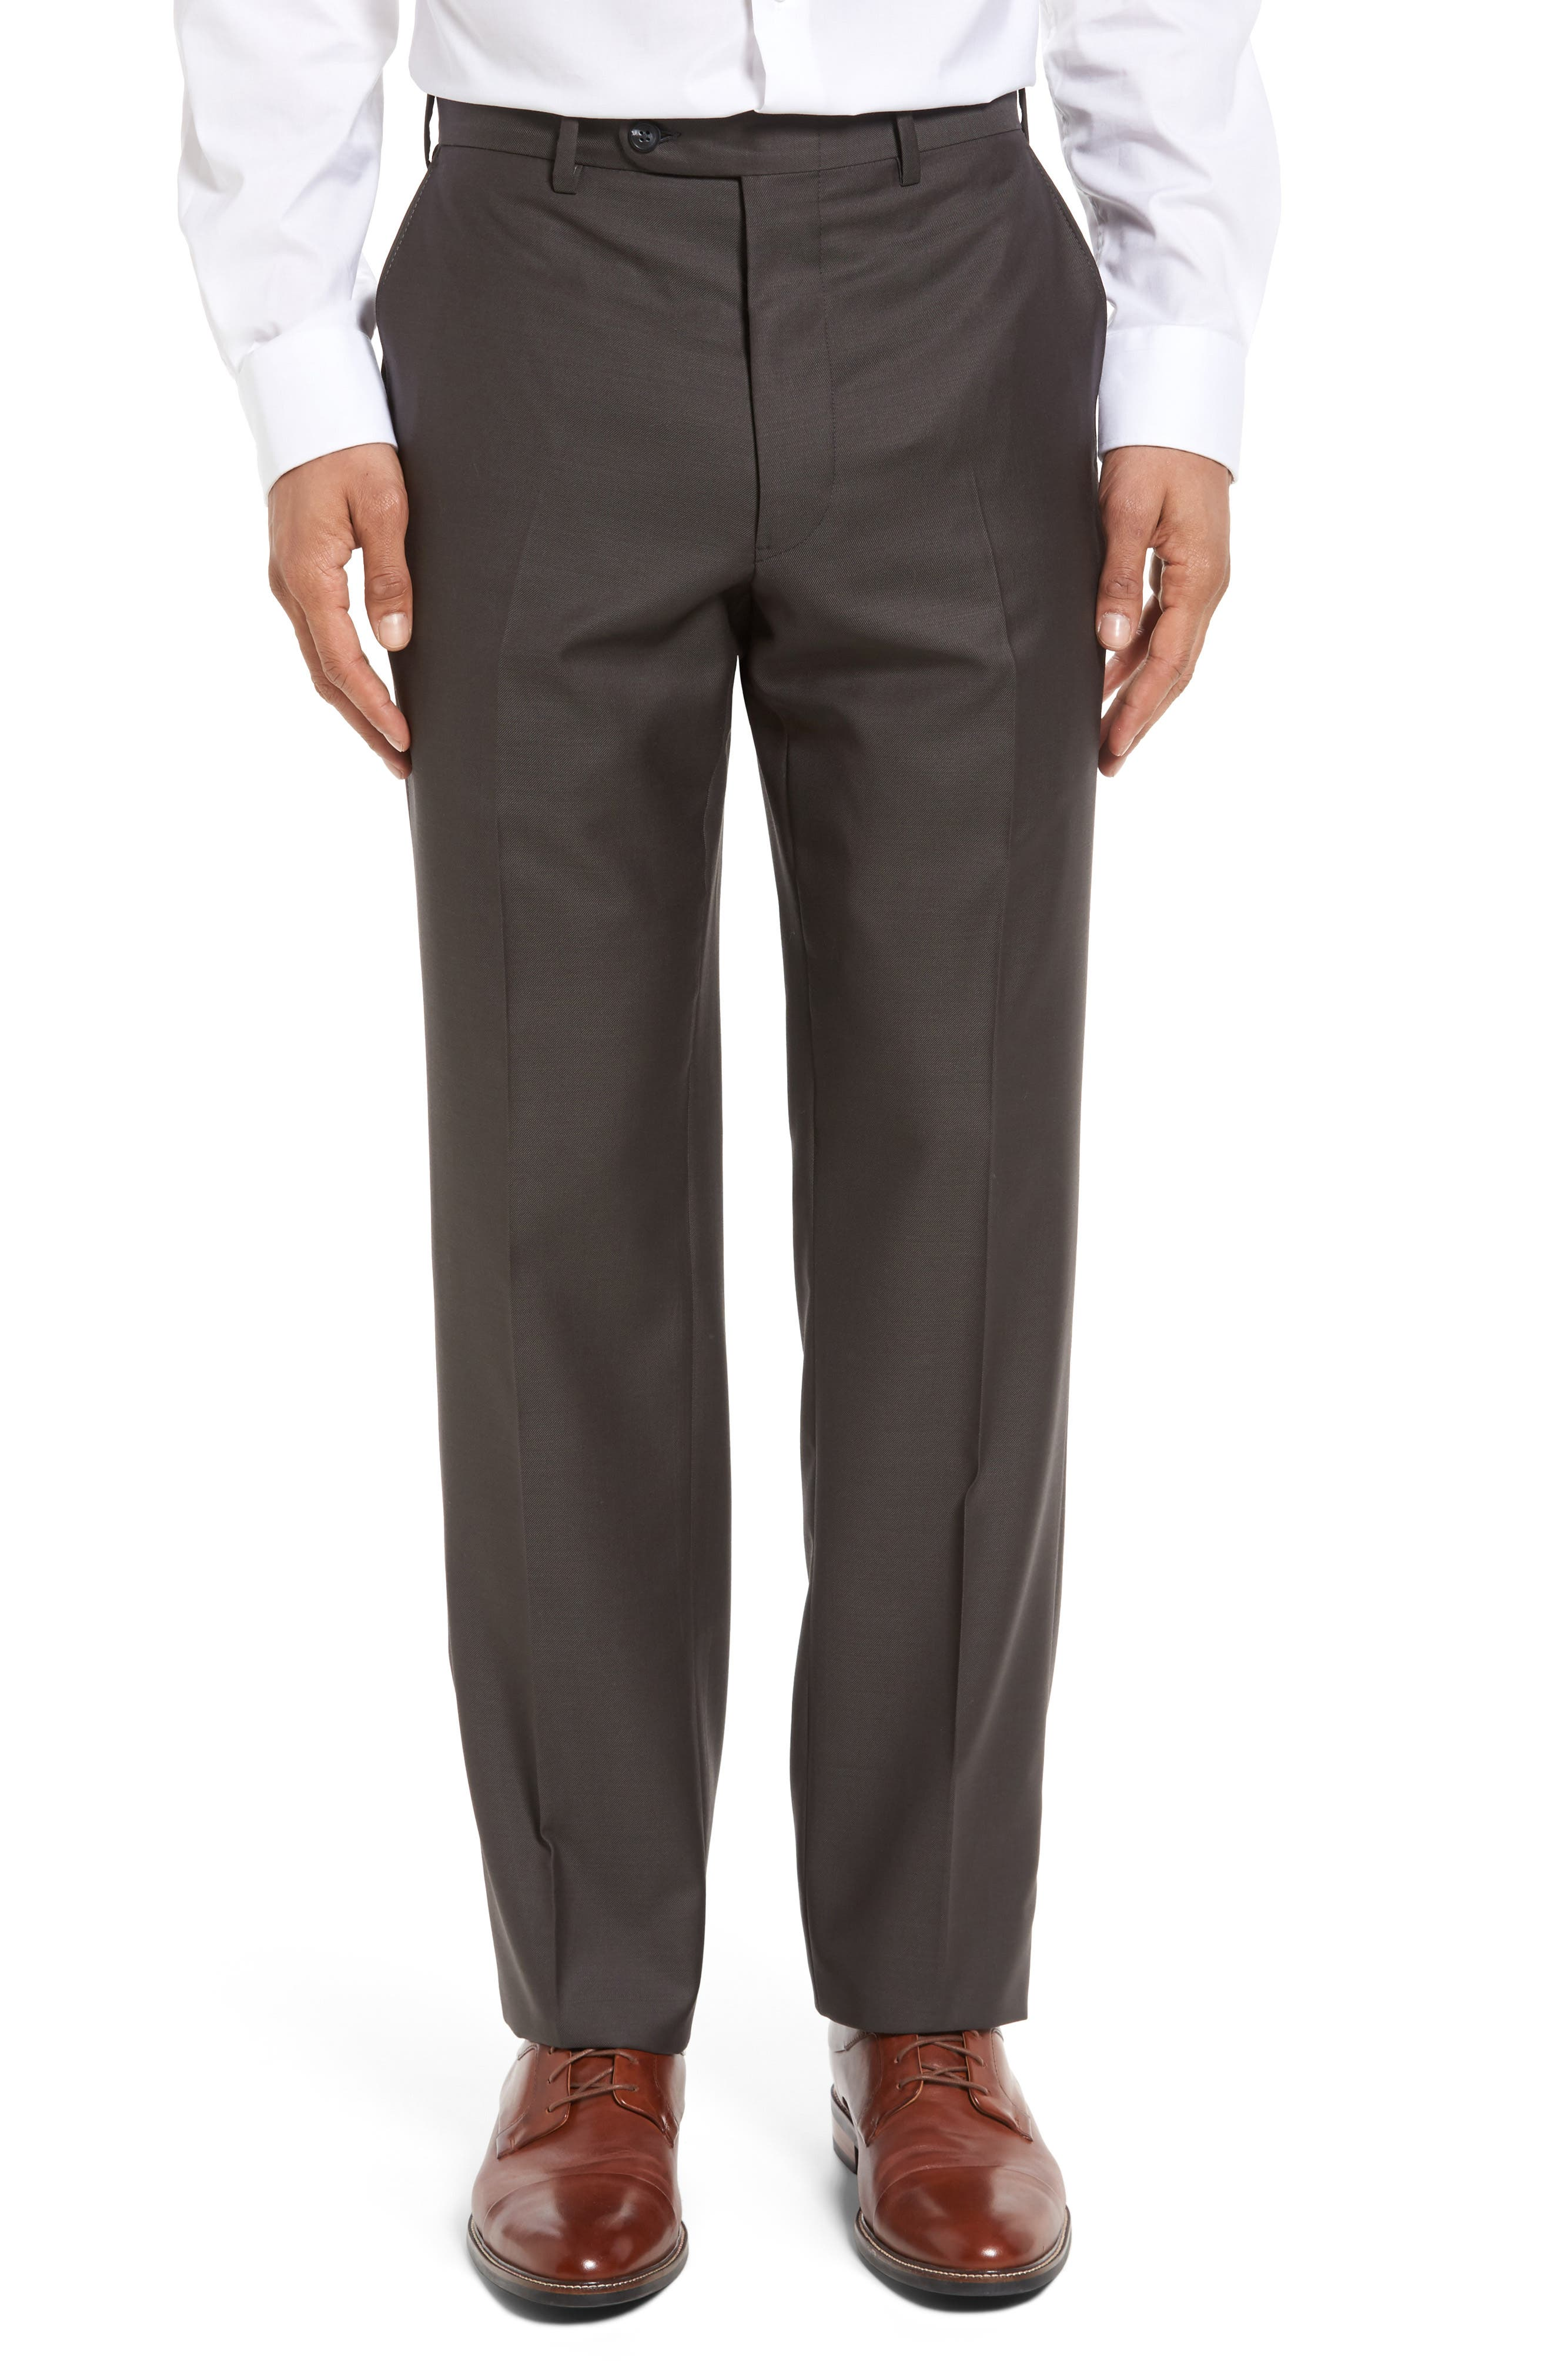 Main Image - JB Britches Flat Front Worsted Wool Trousers